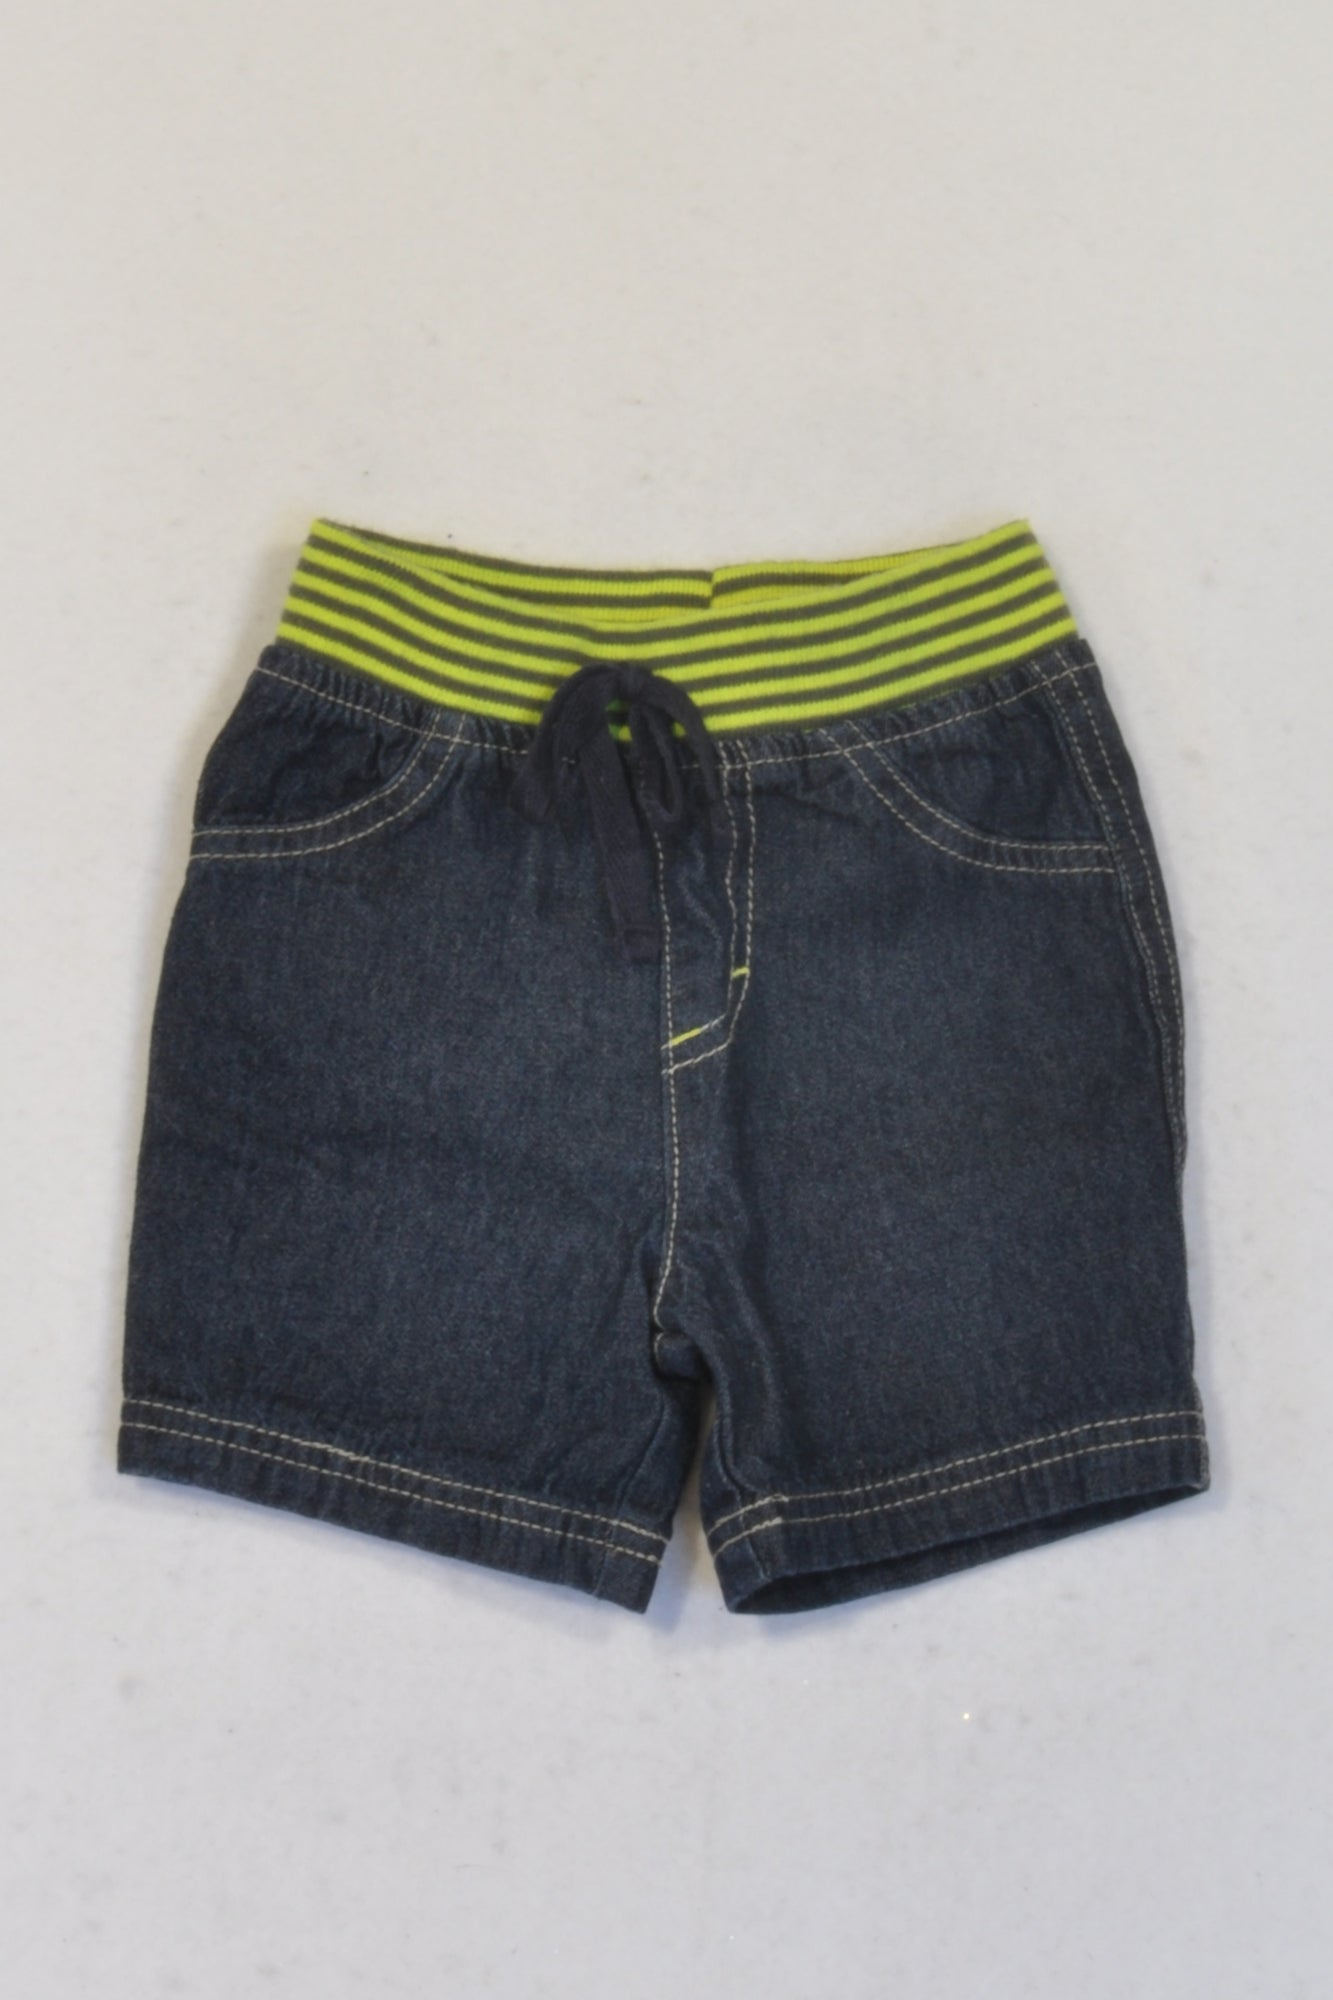 New Ackermans Dark Denim & Green Banded Shorts Boys 3-6 months